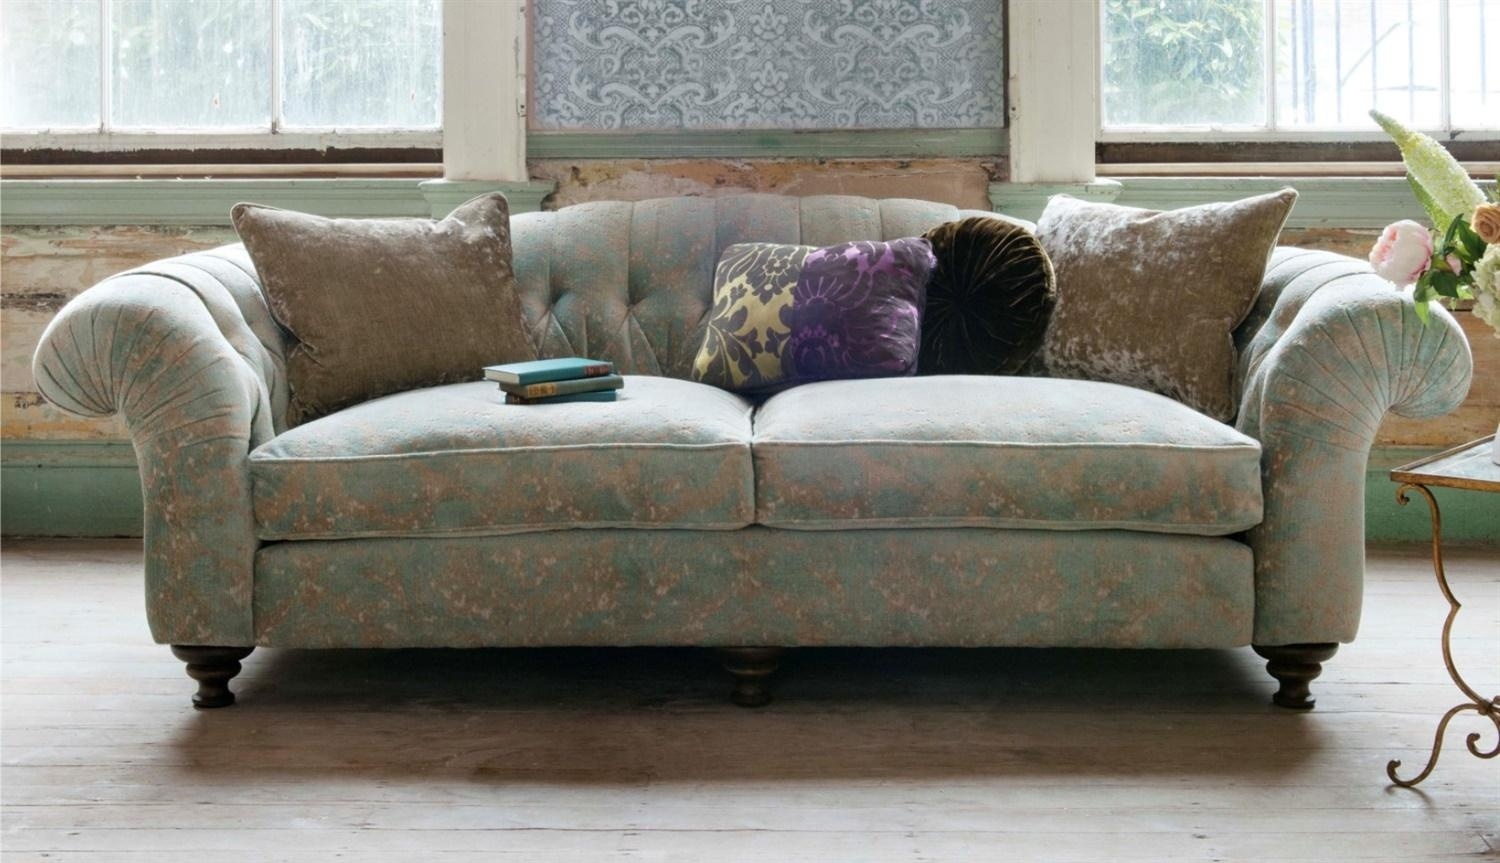 Bloomsbury Throughout Fabric Sofas (View 11 of 20)